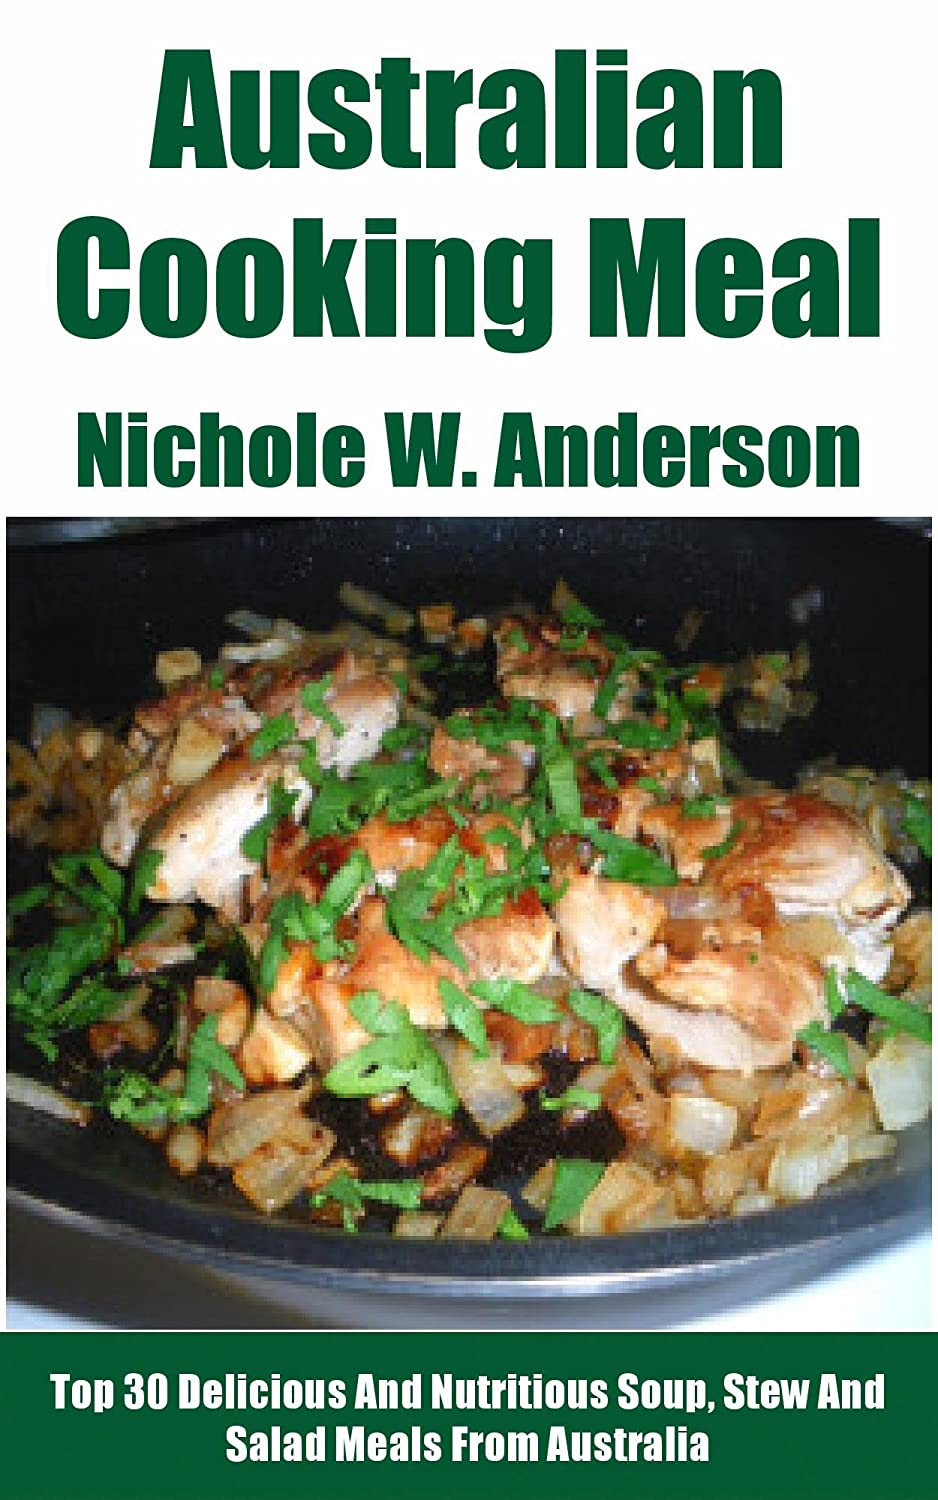 australian-cooking-page-001